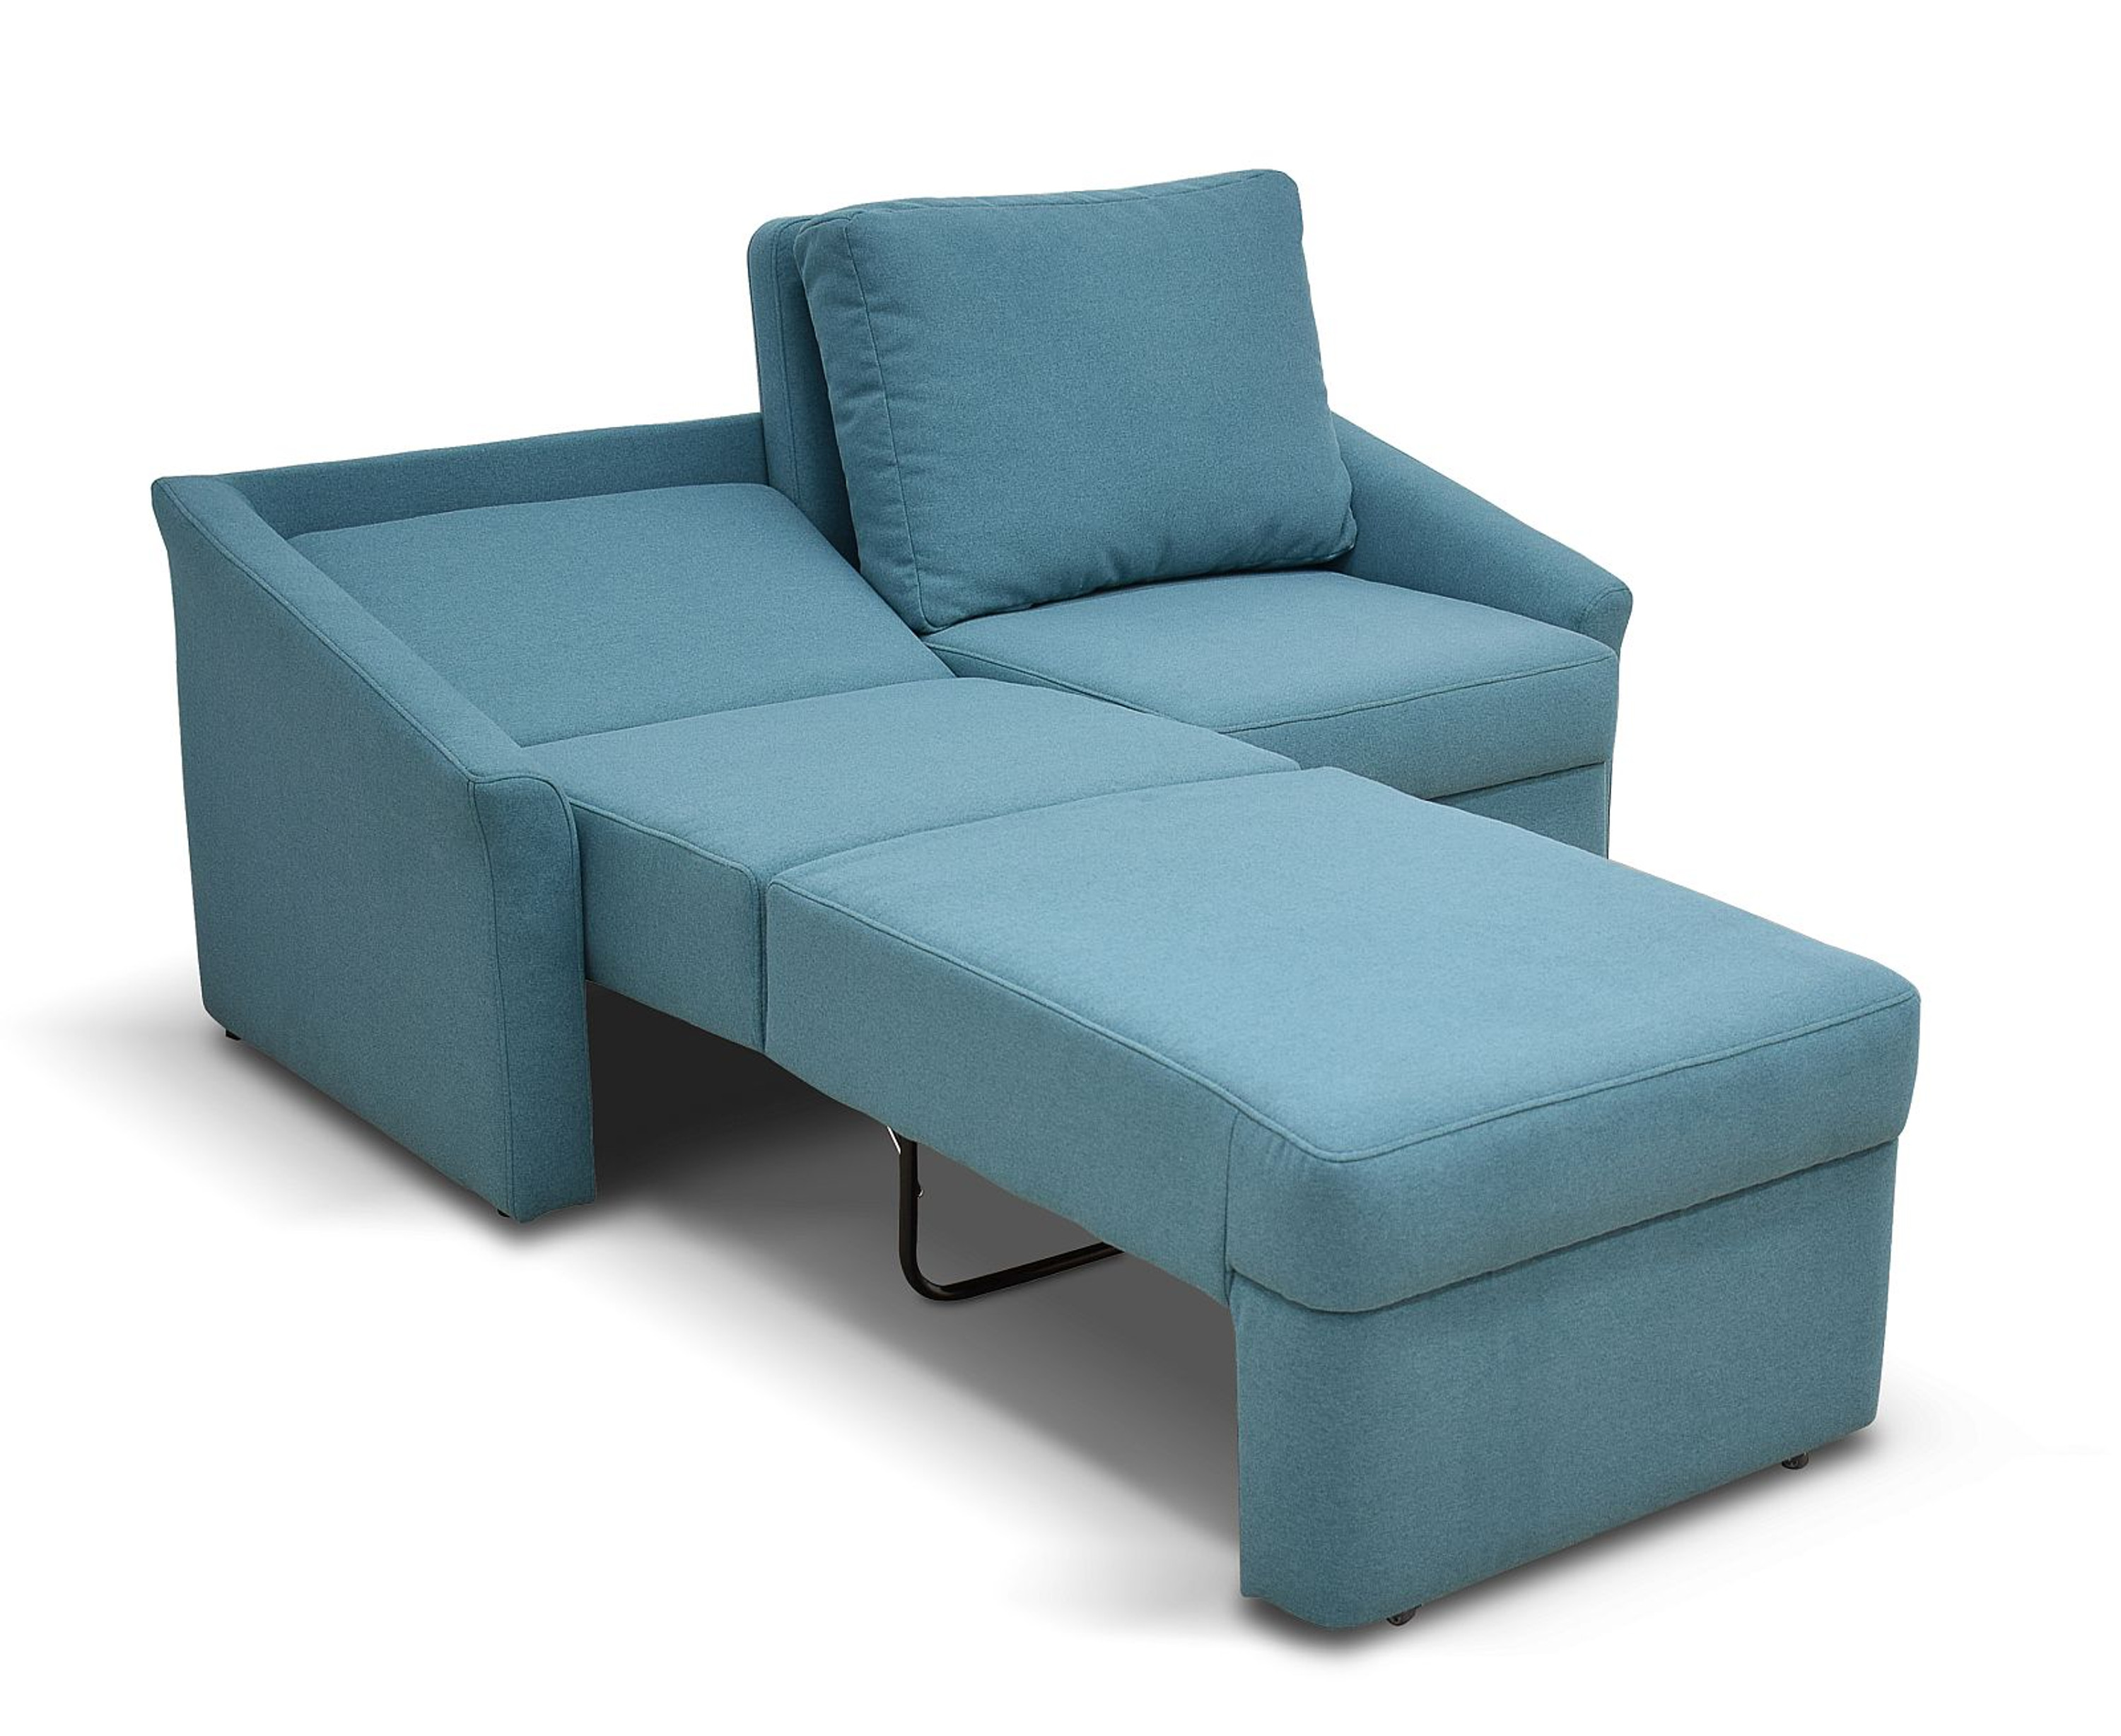 Relaxsofa Bettfunktion 2 Sitzer Schlafsofa Boxsping Polsterung 8 Farben Do Rely Ebay